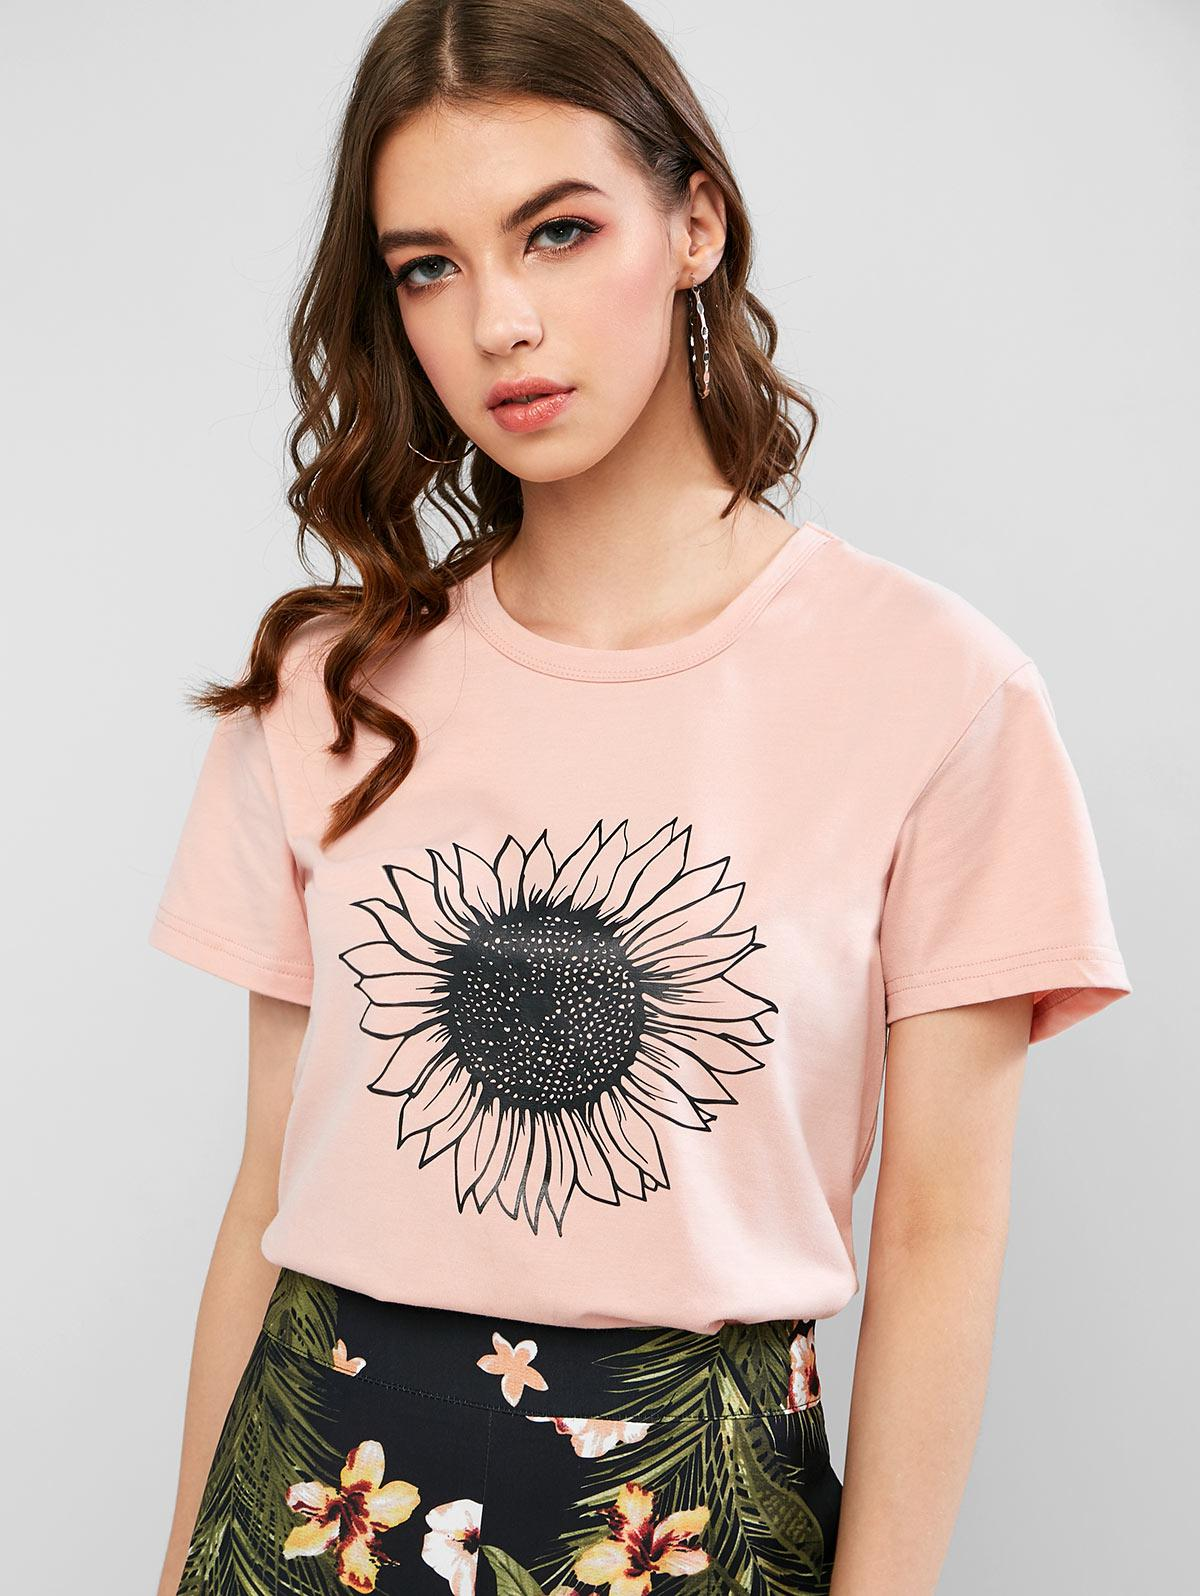 Short Sleeve Sunflower Graphic Basic T Shirt